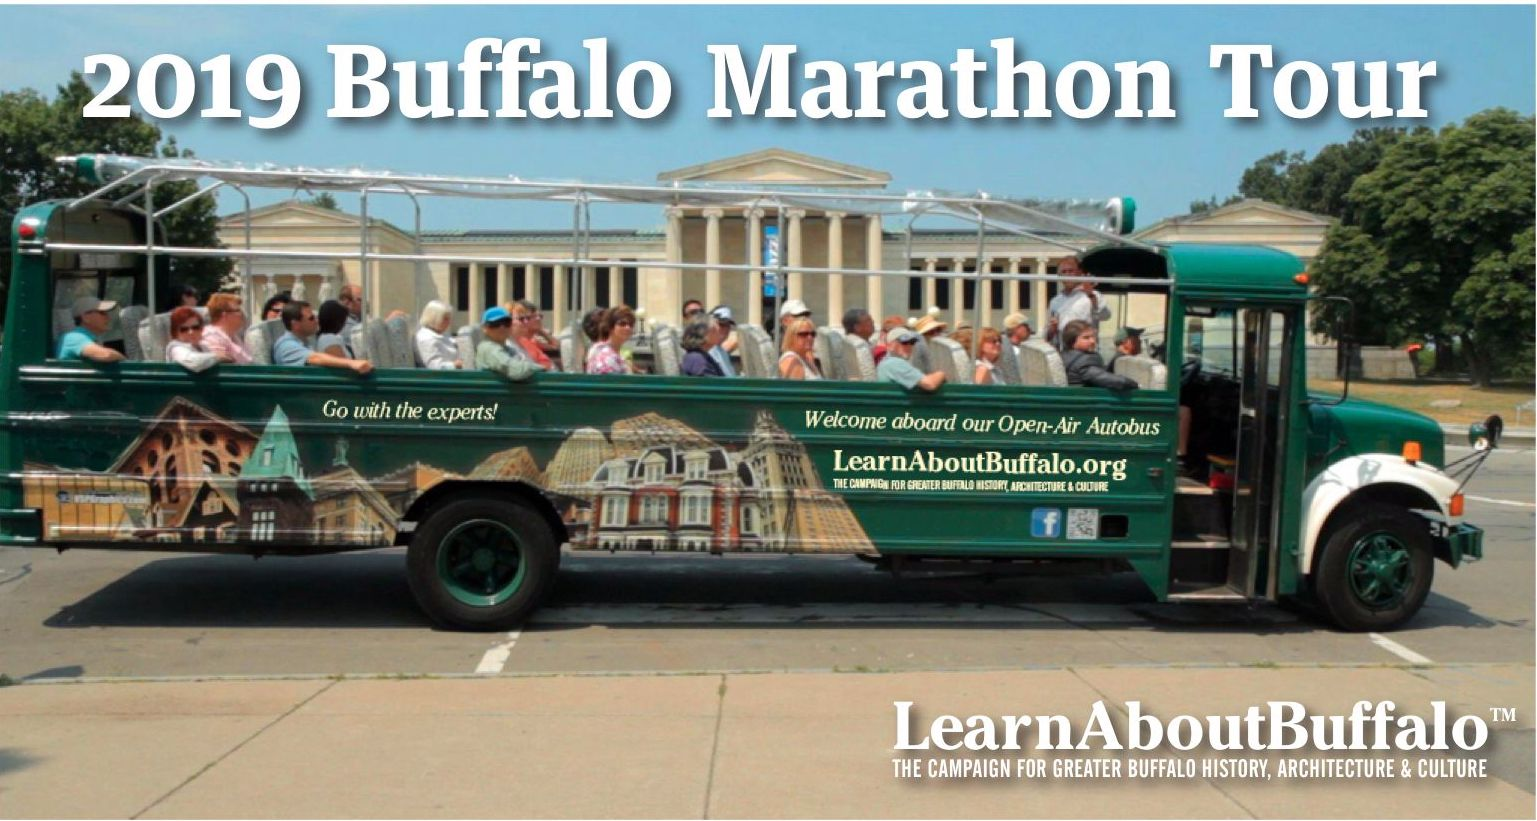 2019-guide-ad-TourBuffalo.jpg